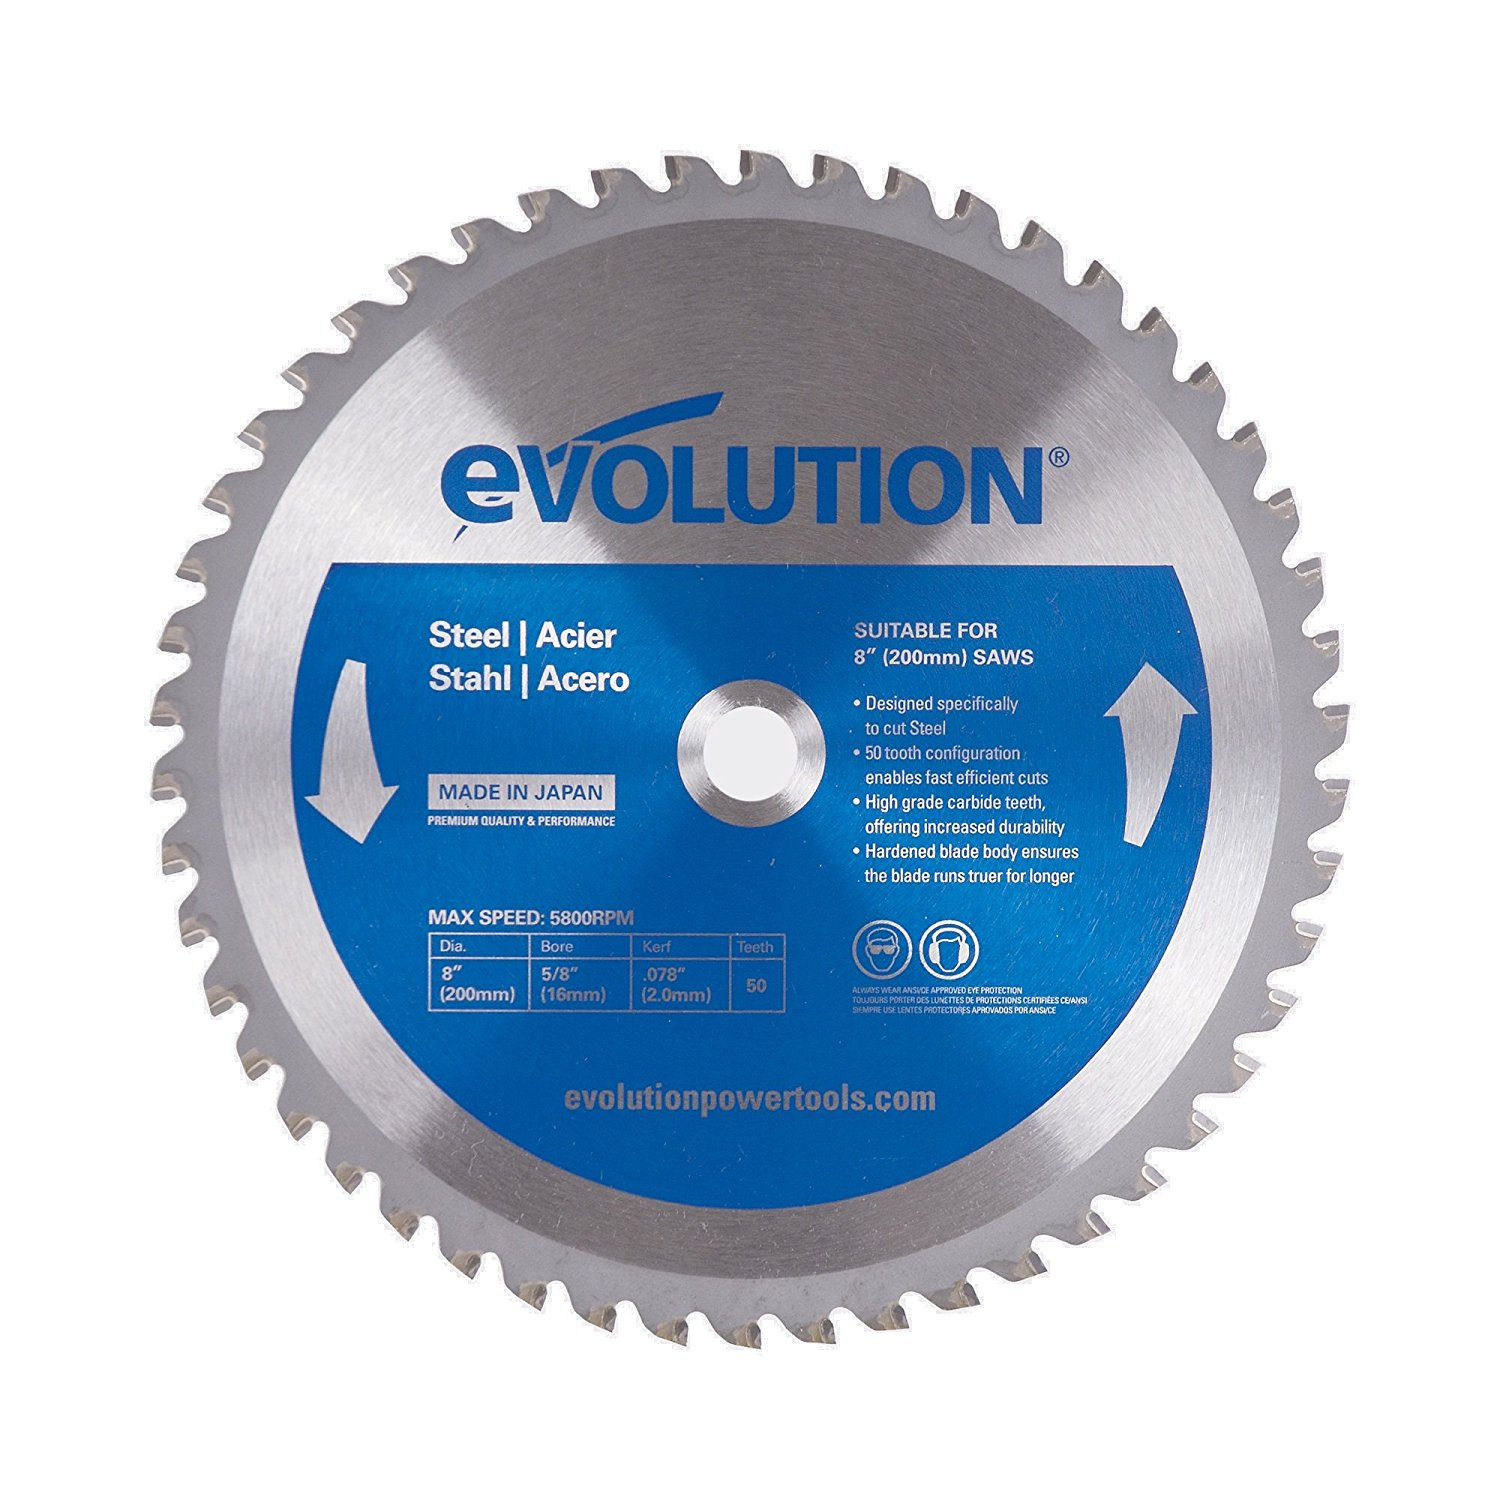 8-Inch X 50-Tooth Steel Cutting Saw Blade